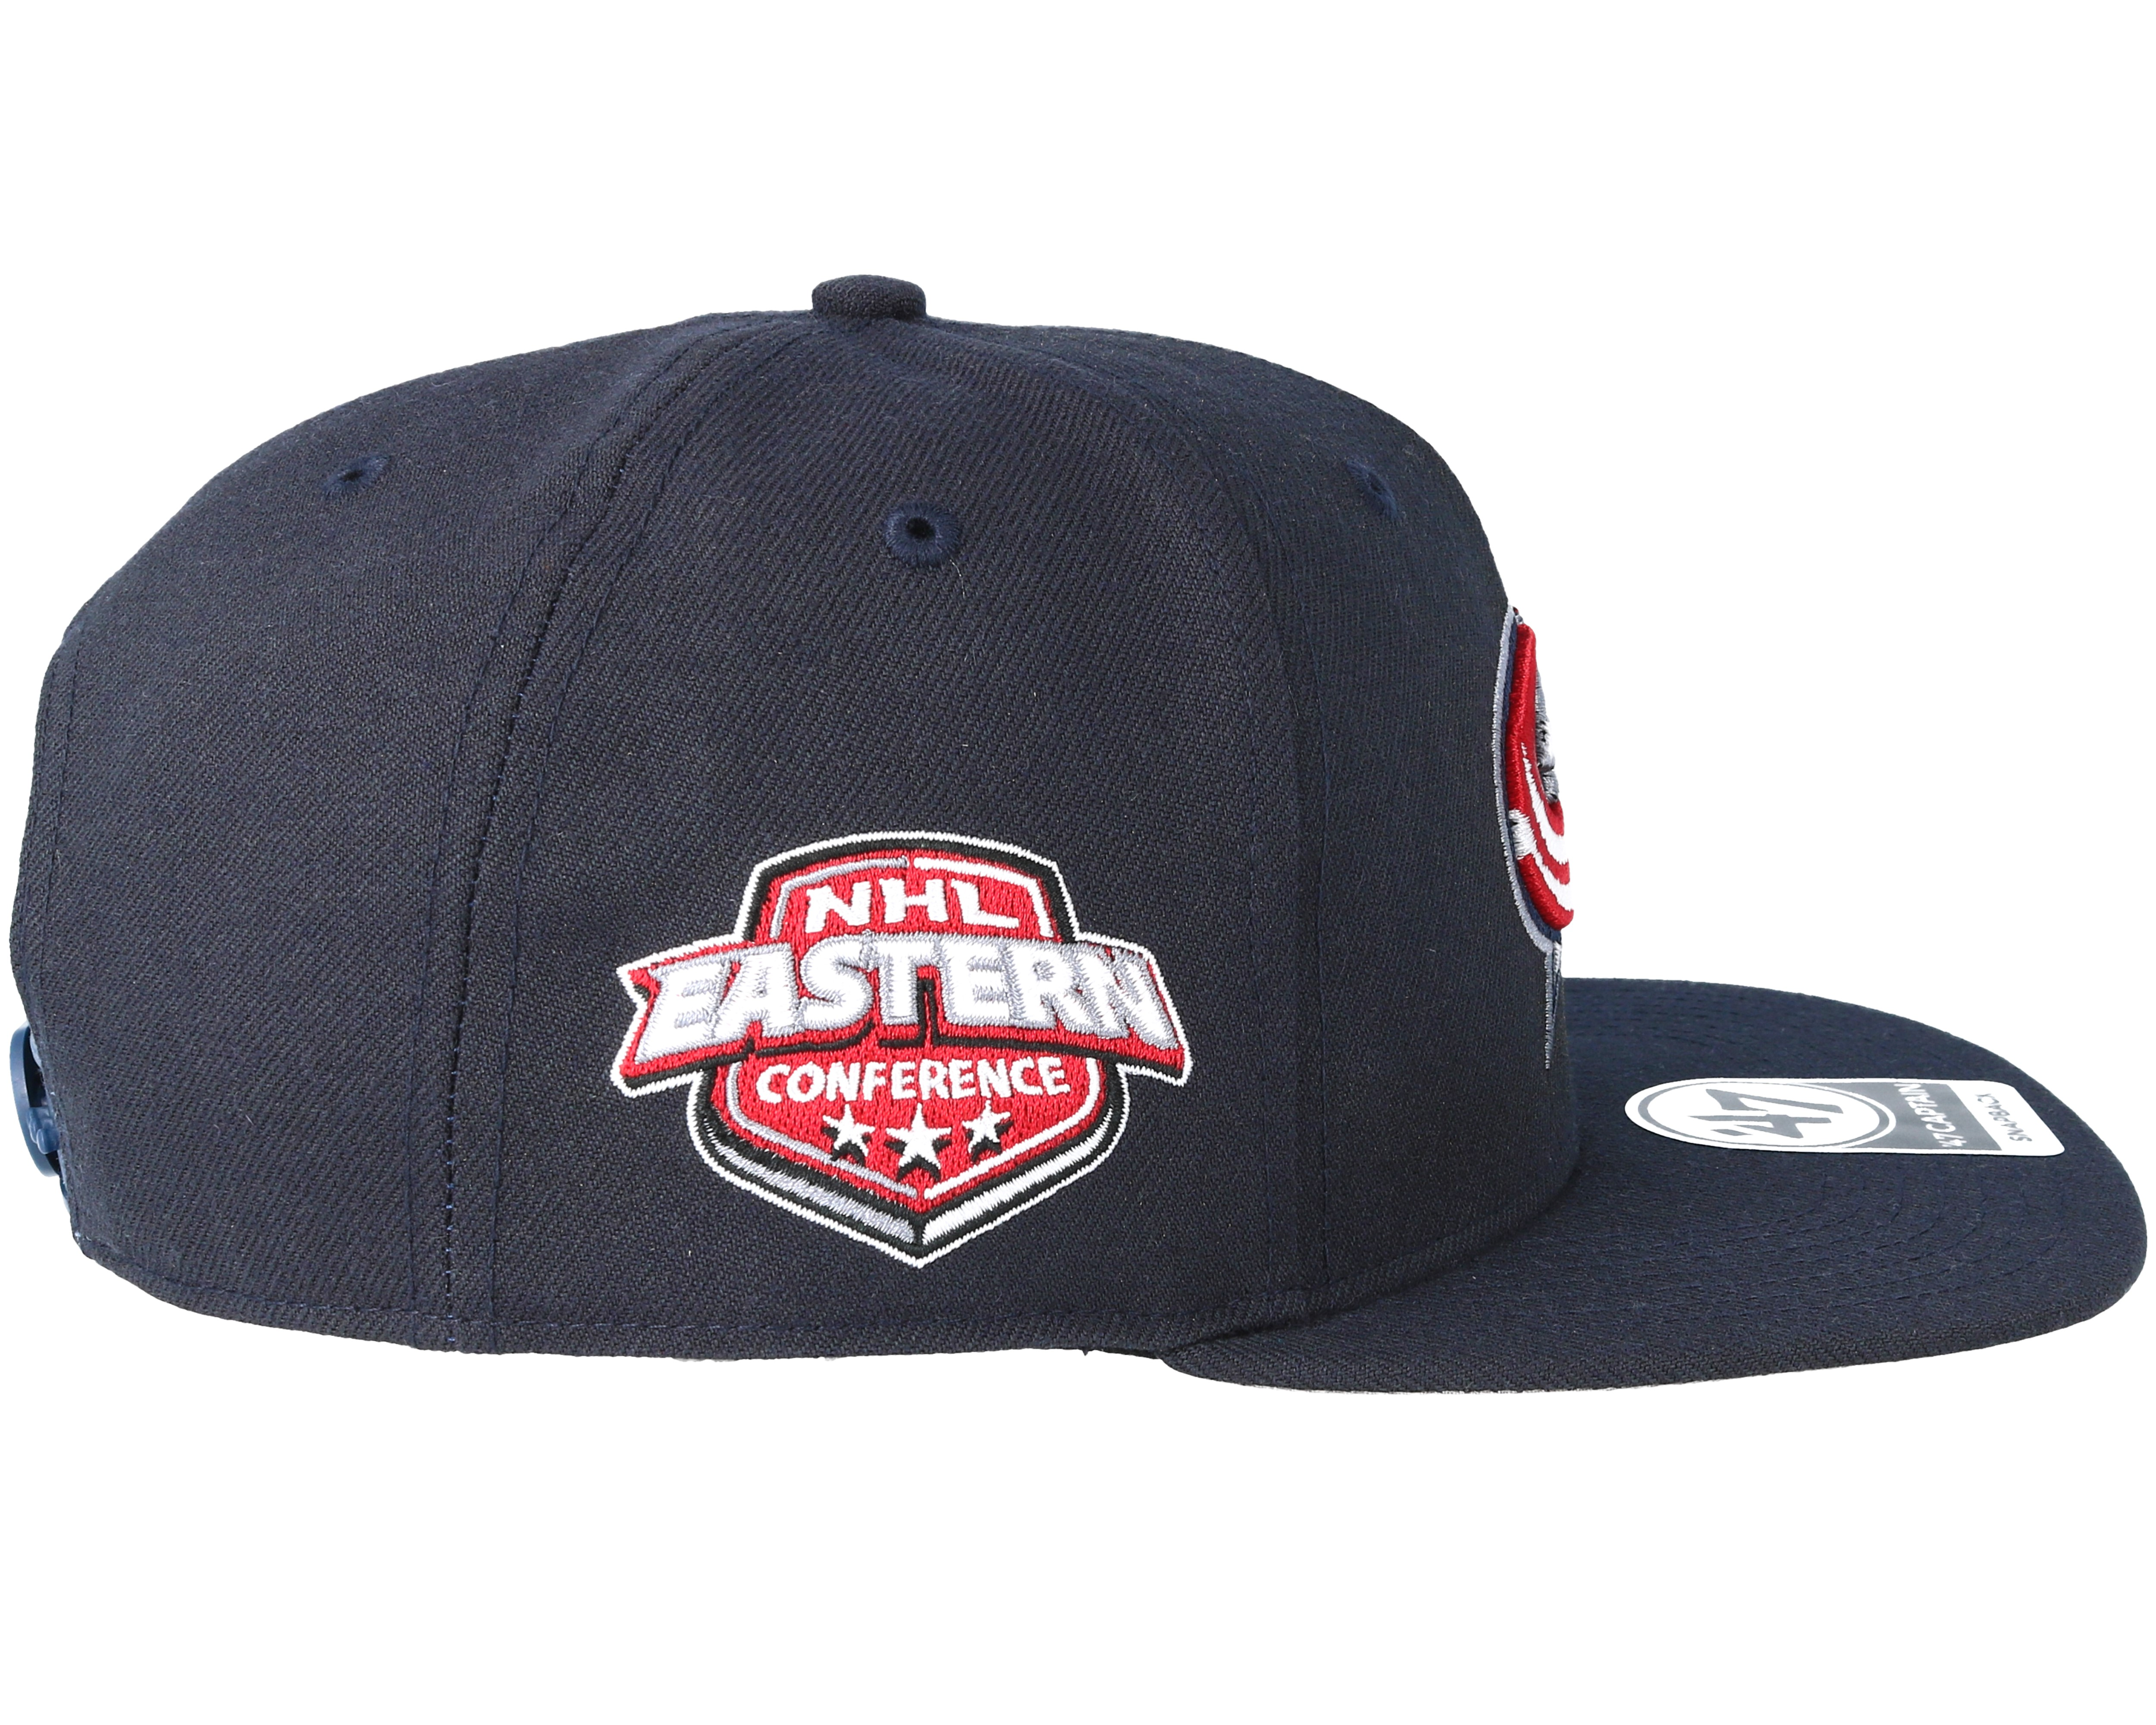 Shop for Columbus Blue Jackets hats, beanies, snapbacks, and other great headwear at the official online store of the National Hockey League. Browse our .